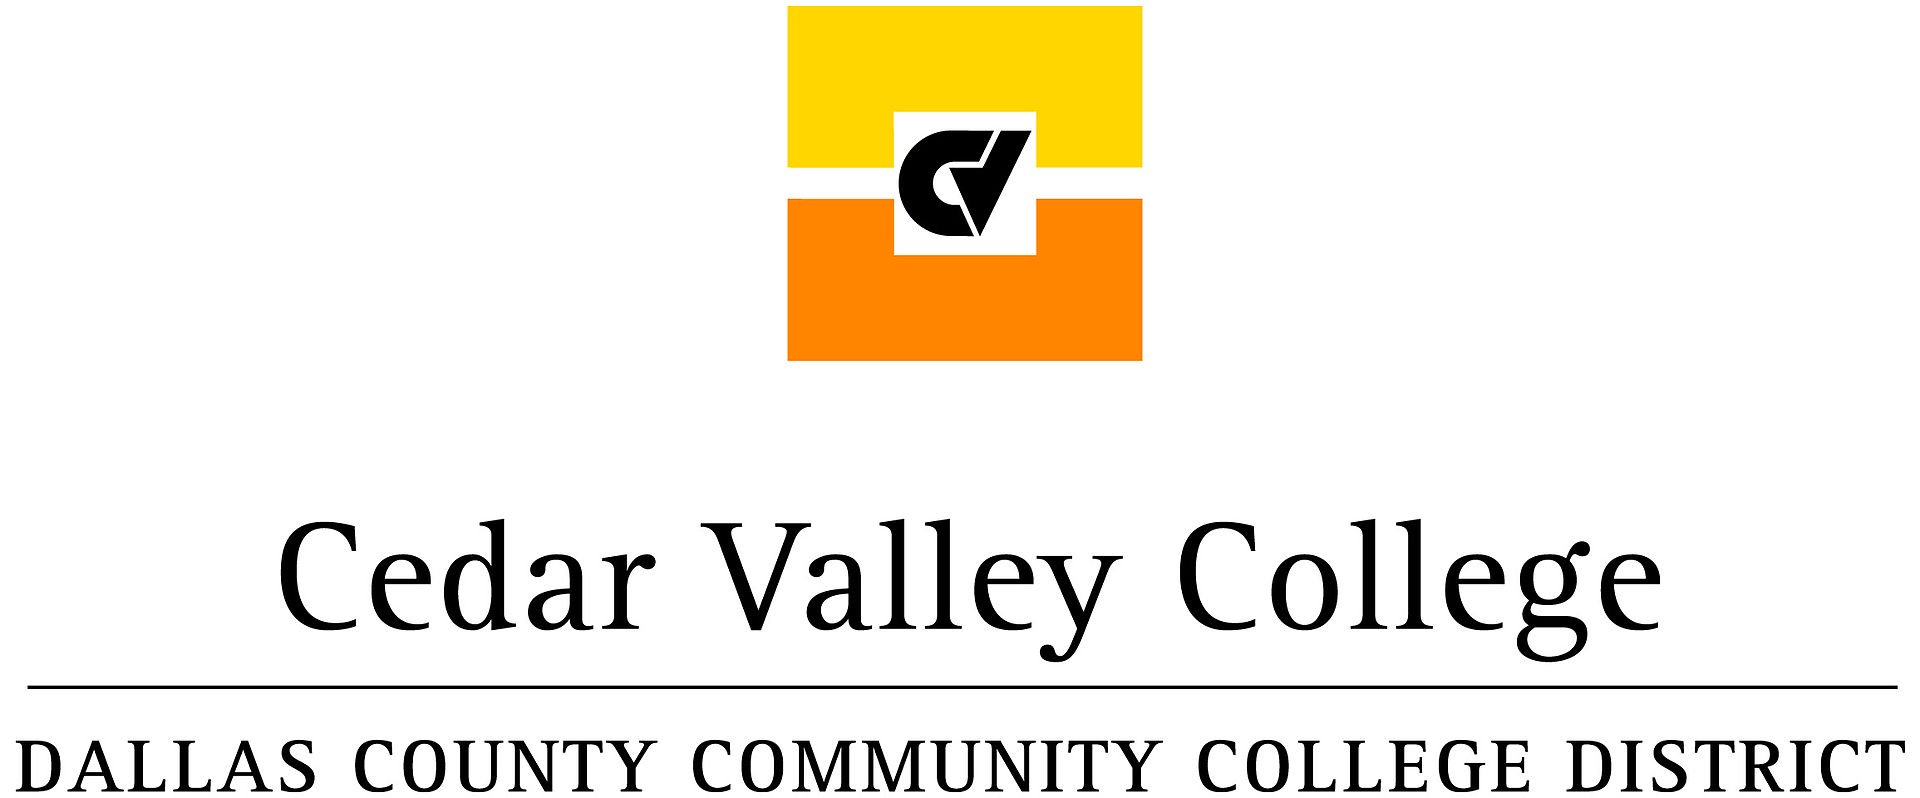 Cedar valley college wikipedia Cedar credit